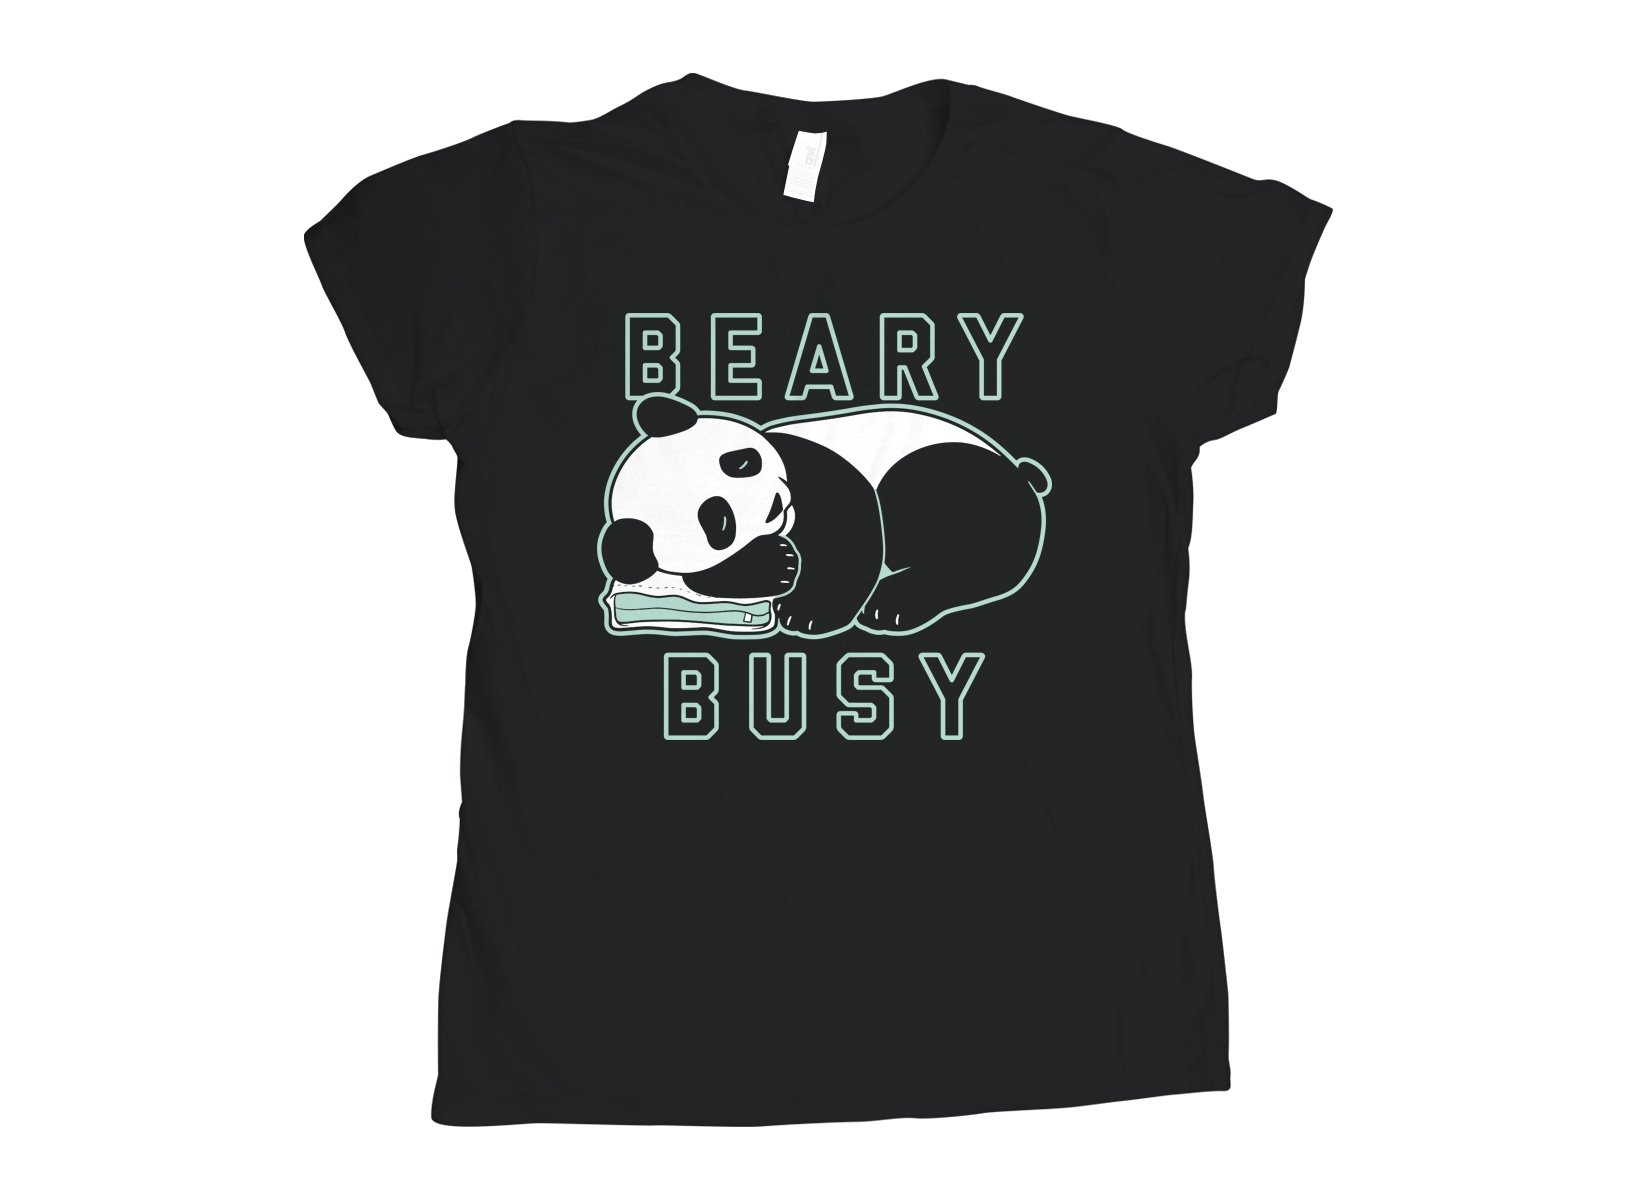 Beary Busy on Womens T-Shirt